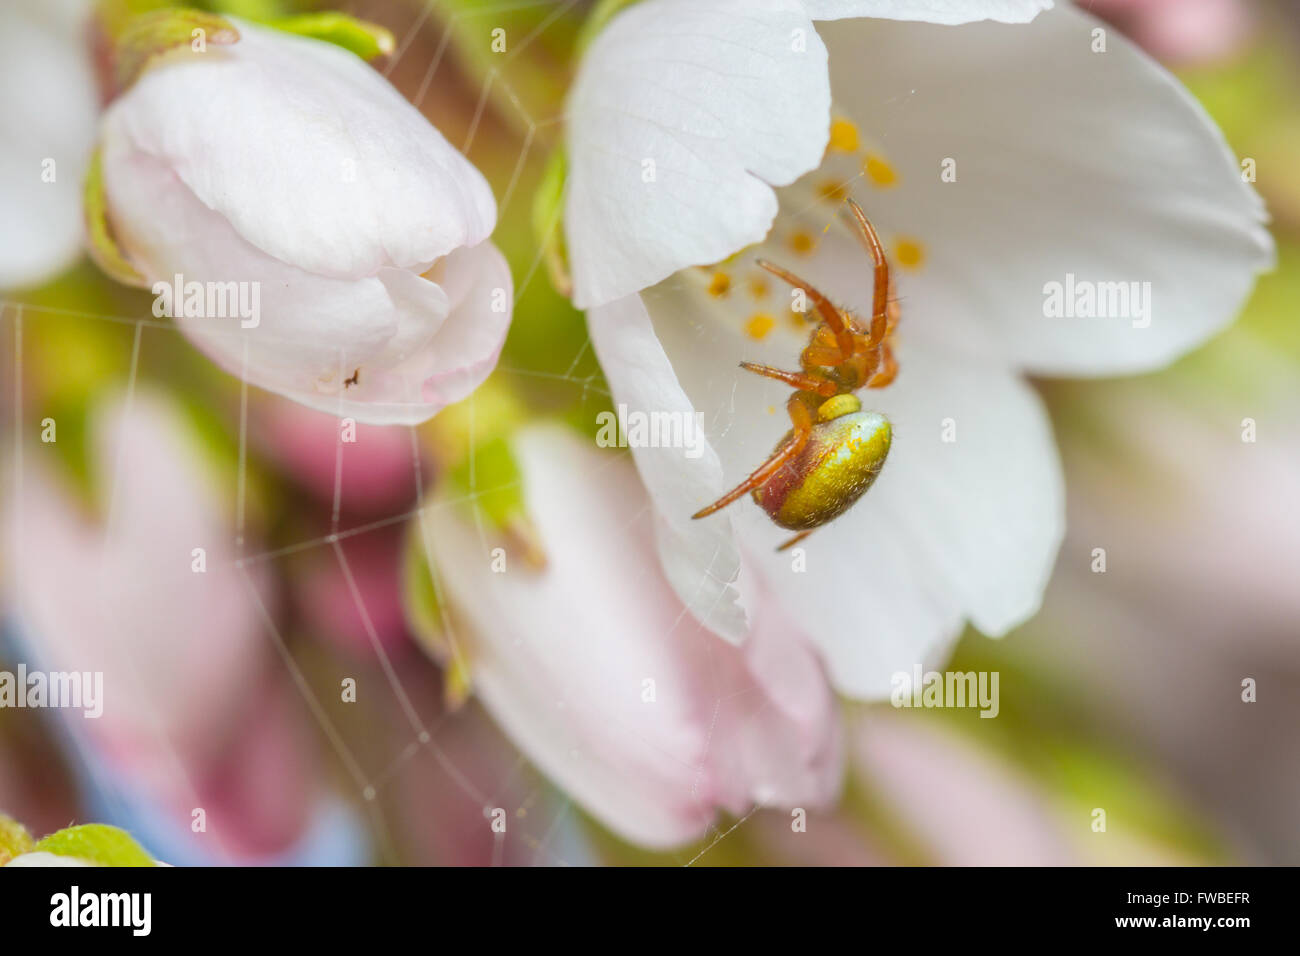 Cucumber Green spider (Araniella species) on cherry blossom. Spider has been parasatised by a wasp larva - Stock Image